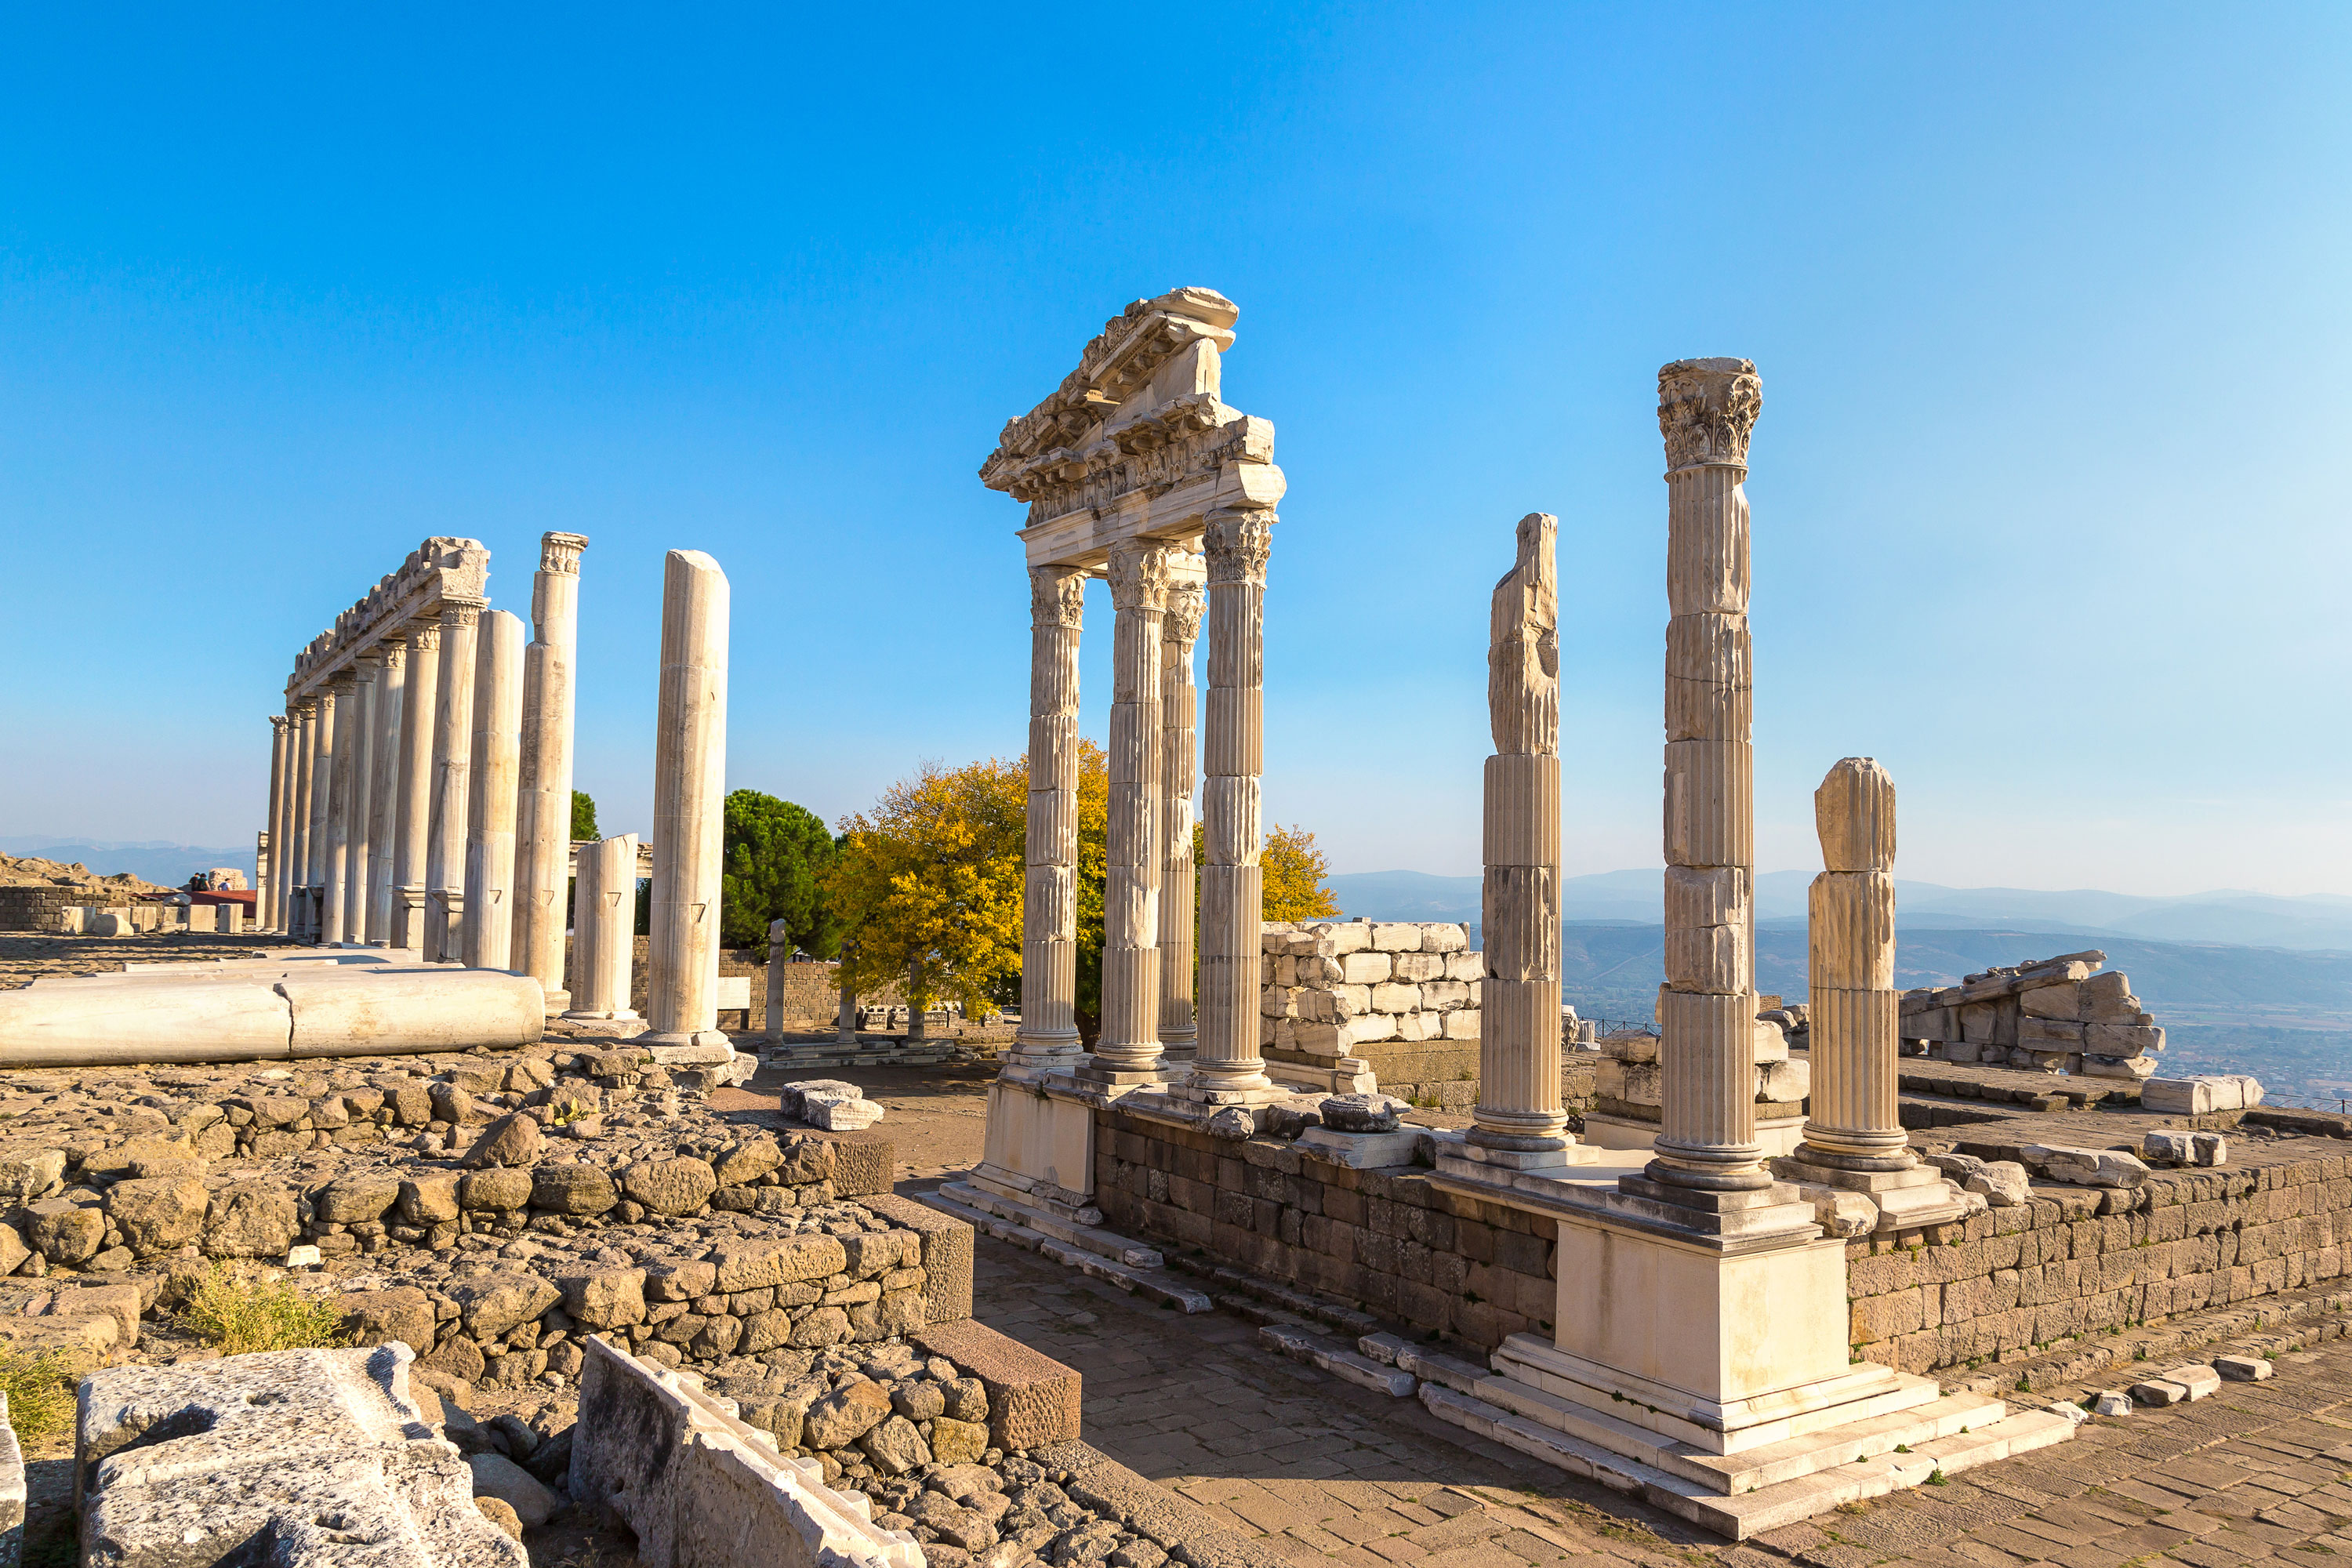 Temple of Trajan, Pergamon